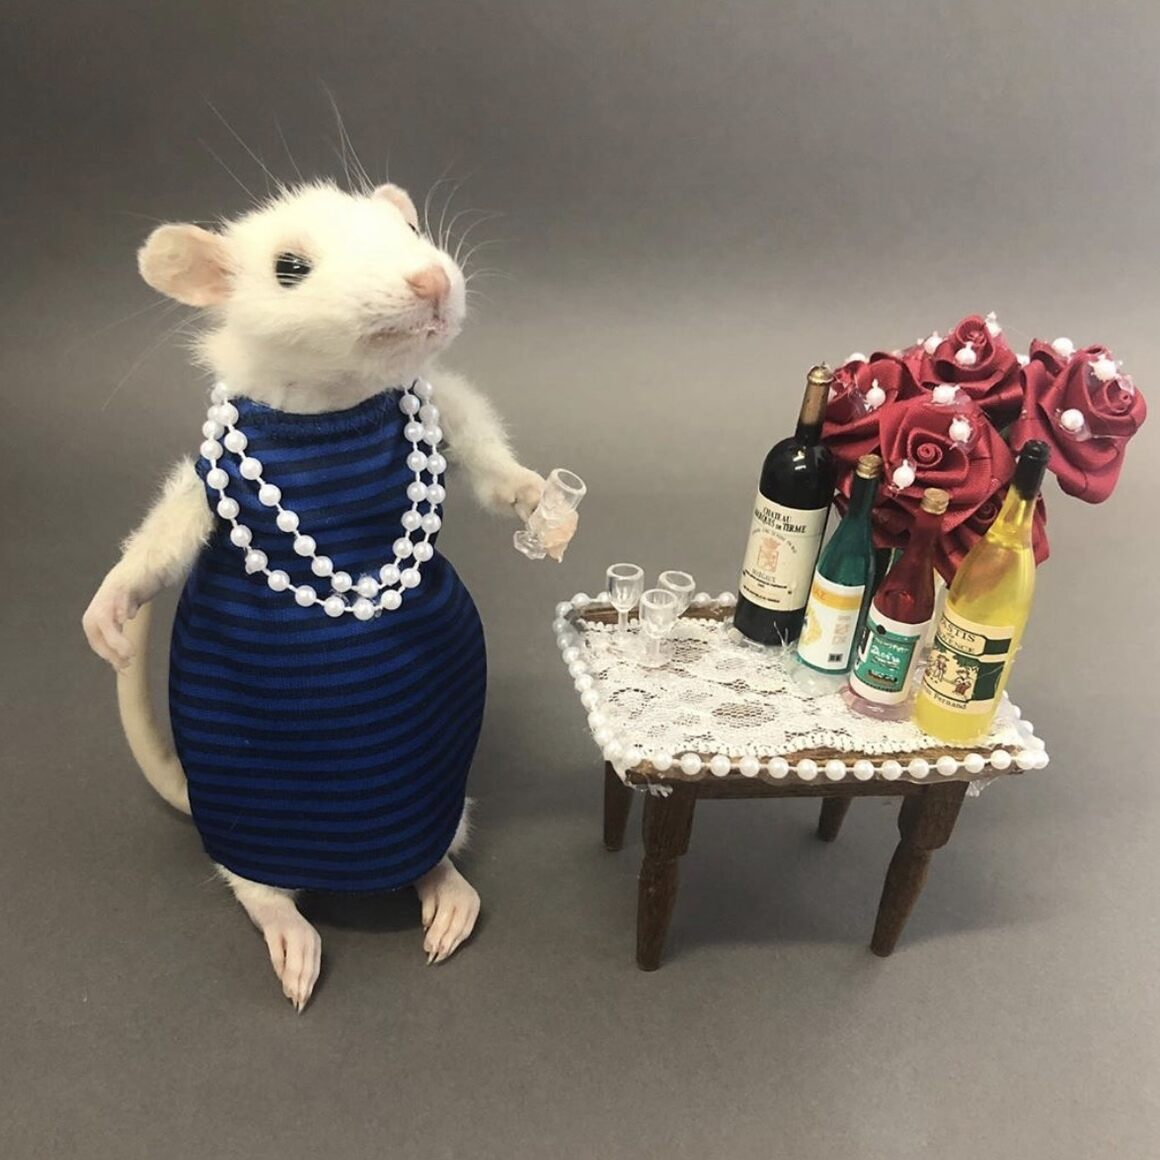 Cocktail party mouse taxidermy workshop.